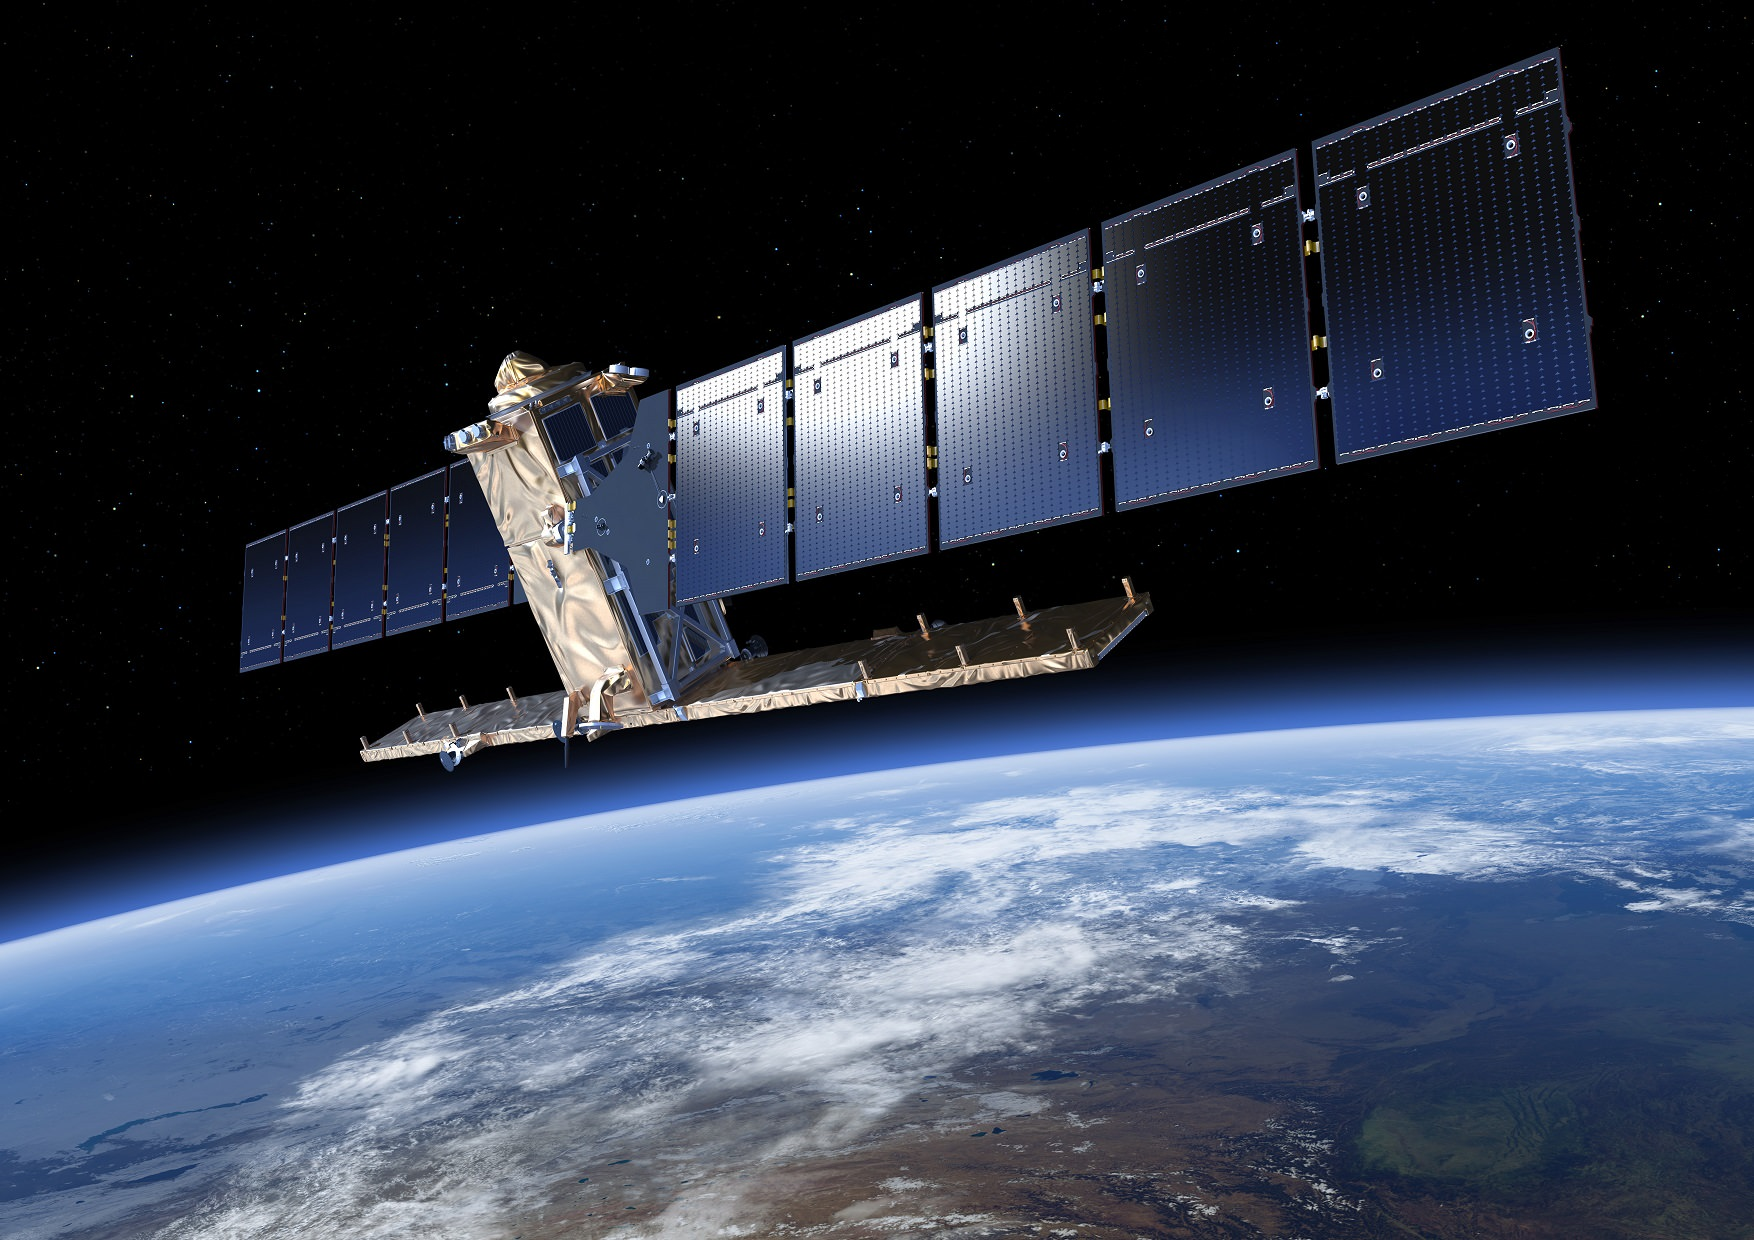 Artist's conception of Sentinel-1, an environment-monitoring satellite from the European Space Agency. Credit: ESA/ATG medialab